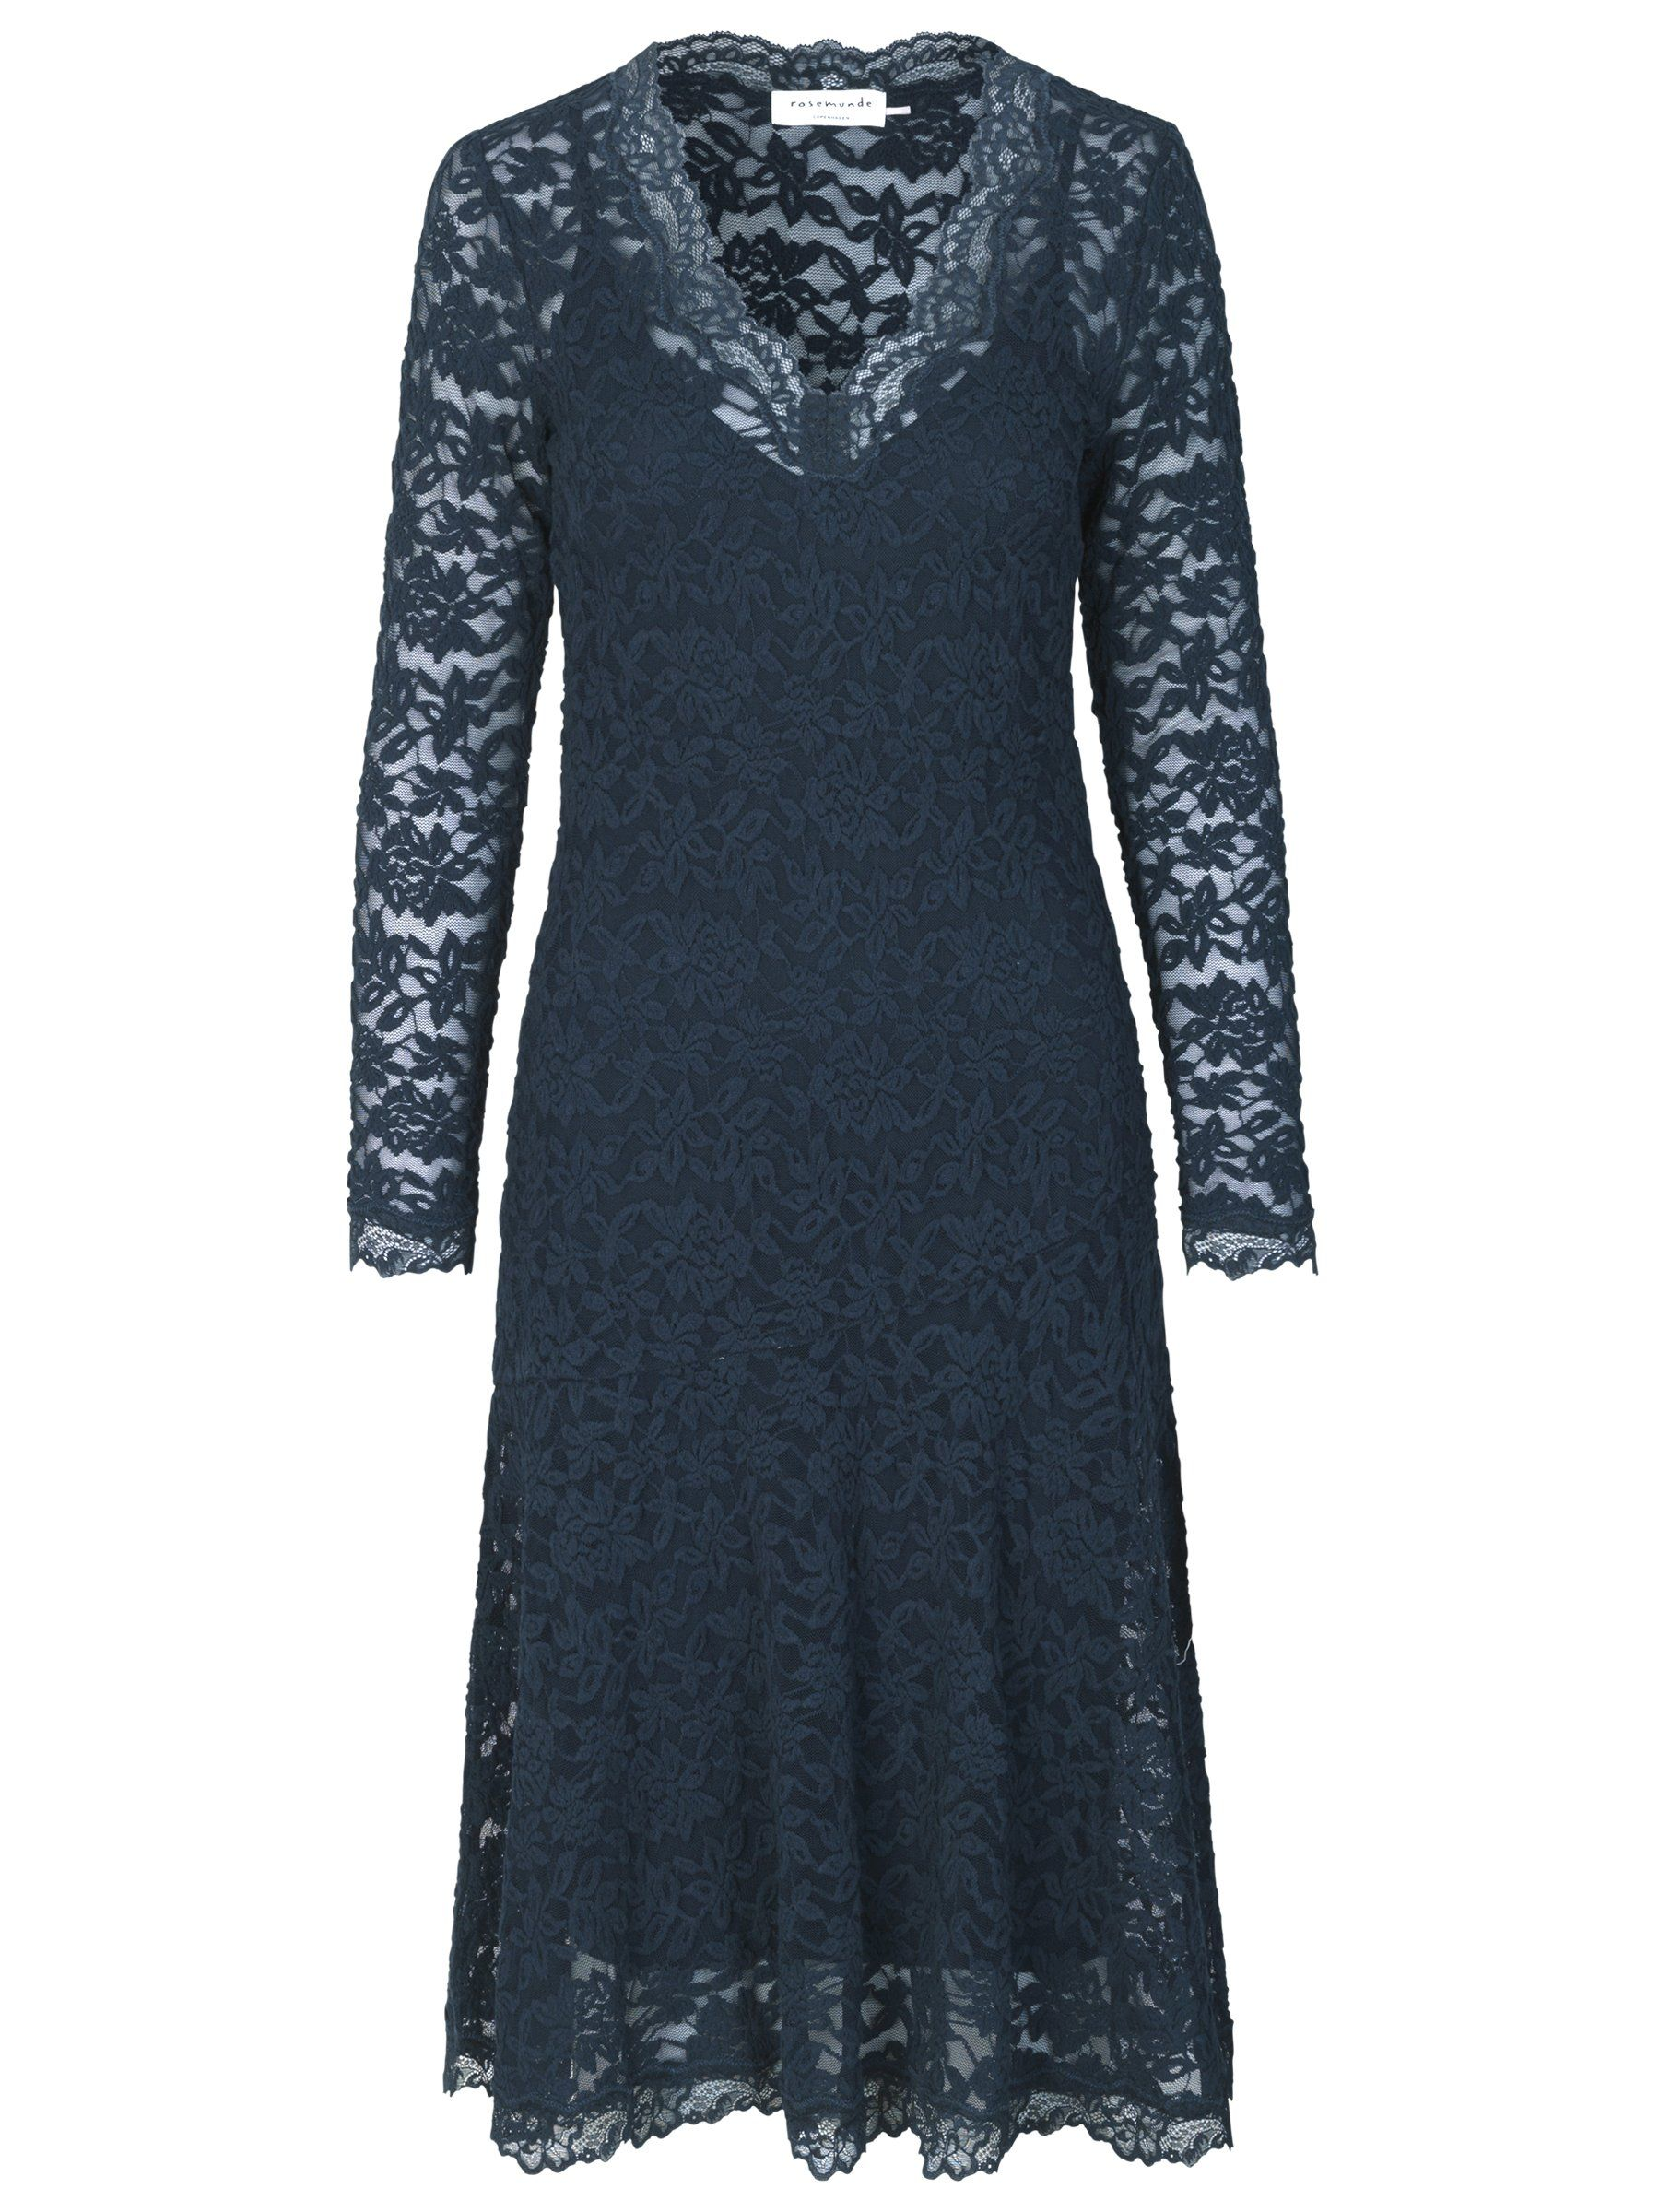 Rosemunde 4726 Dress in Navy XS